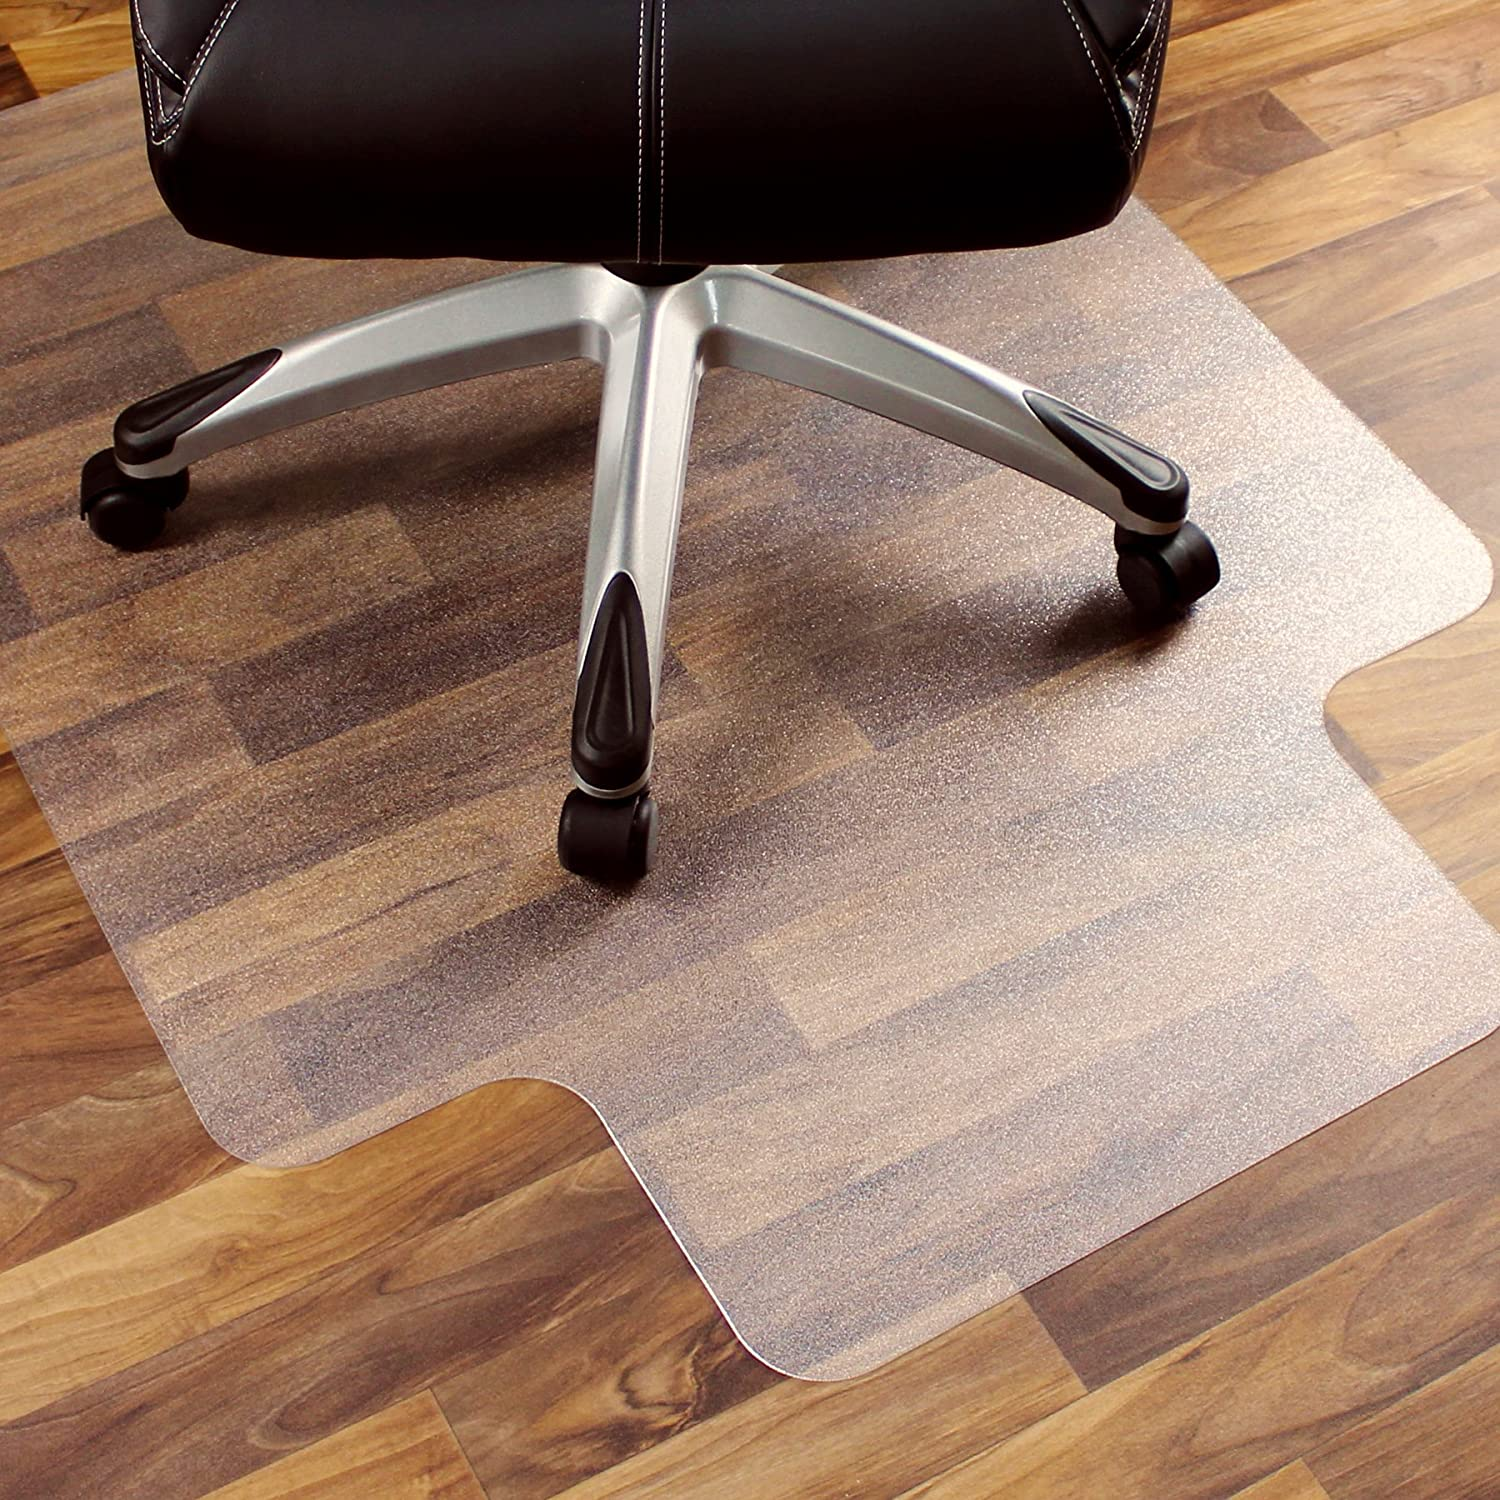 Marvelux 36 x 48 Heavy Duty Polycarbonate PC Lipped Chair Mat for Hard Floors Transparent Hardwood Floor Protector Shipped Flat Multiple Sizes